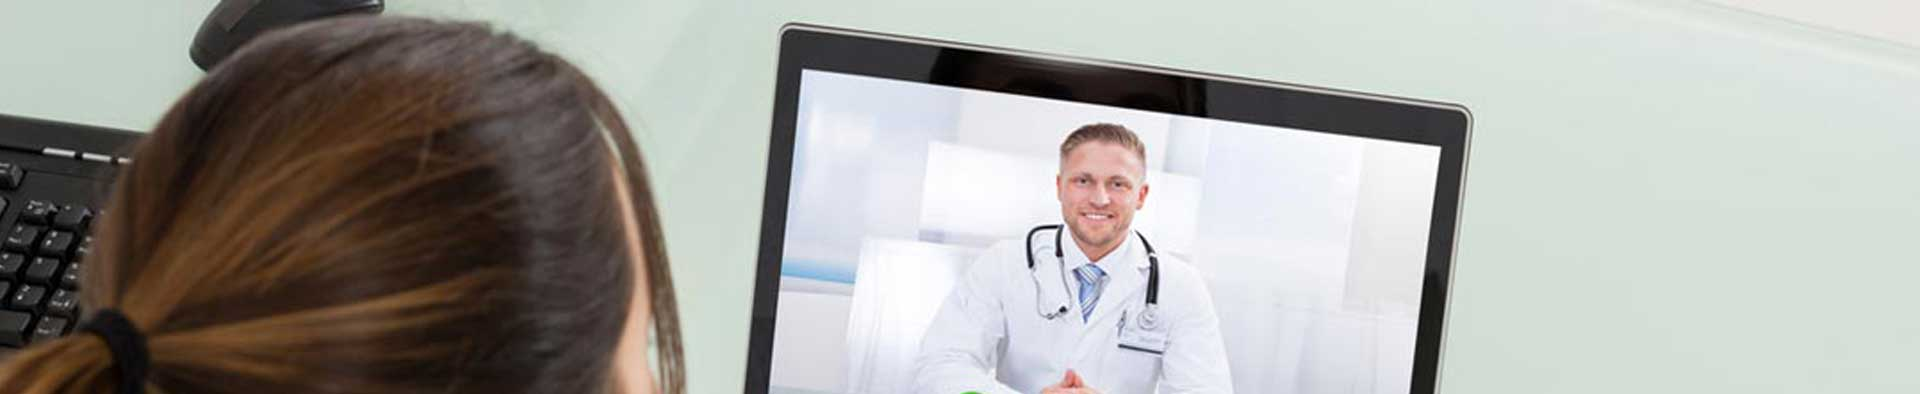 Integrated Videocall in the online scheduling and calendar system